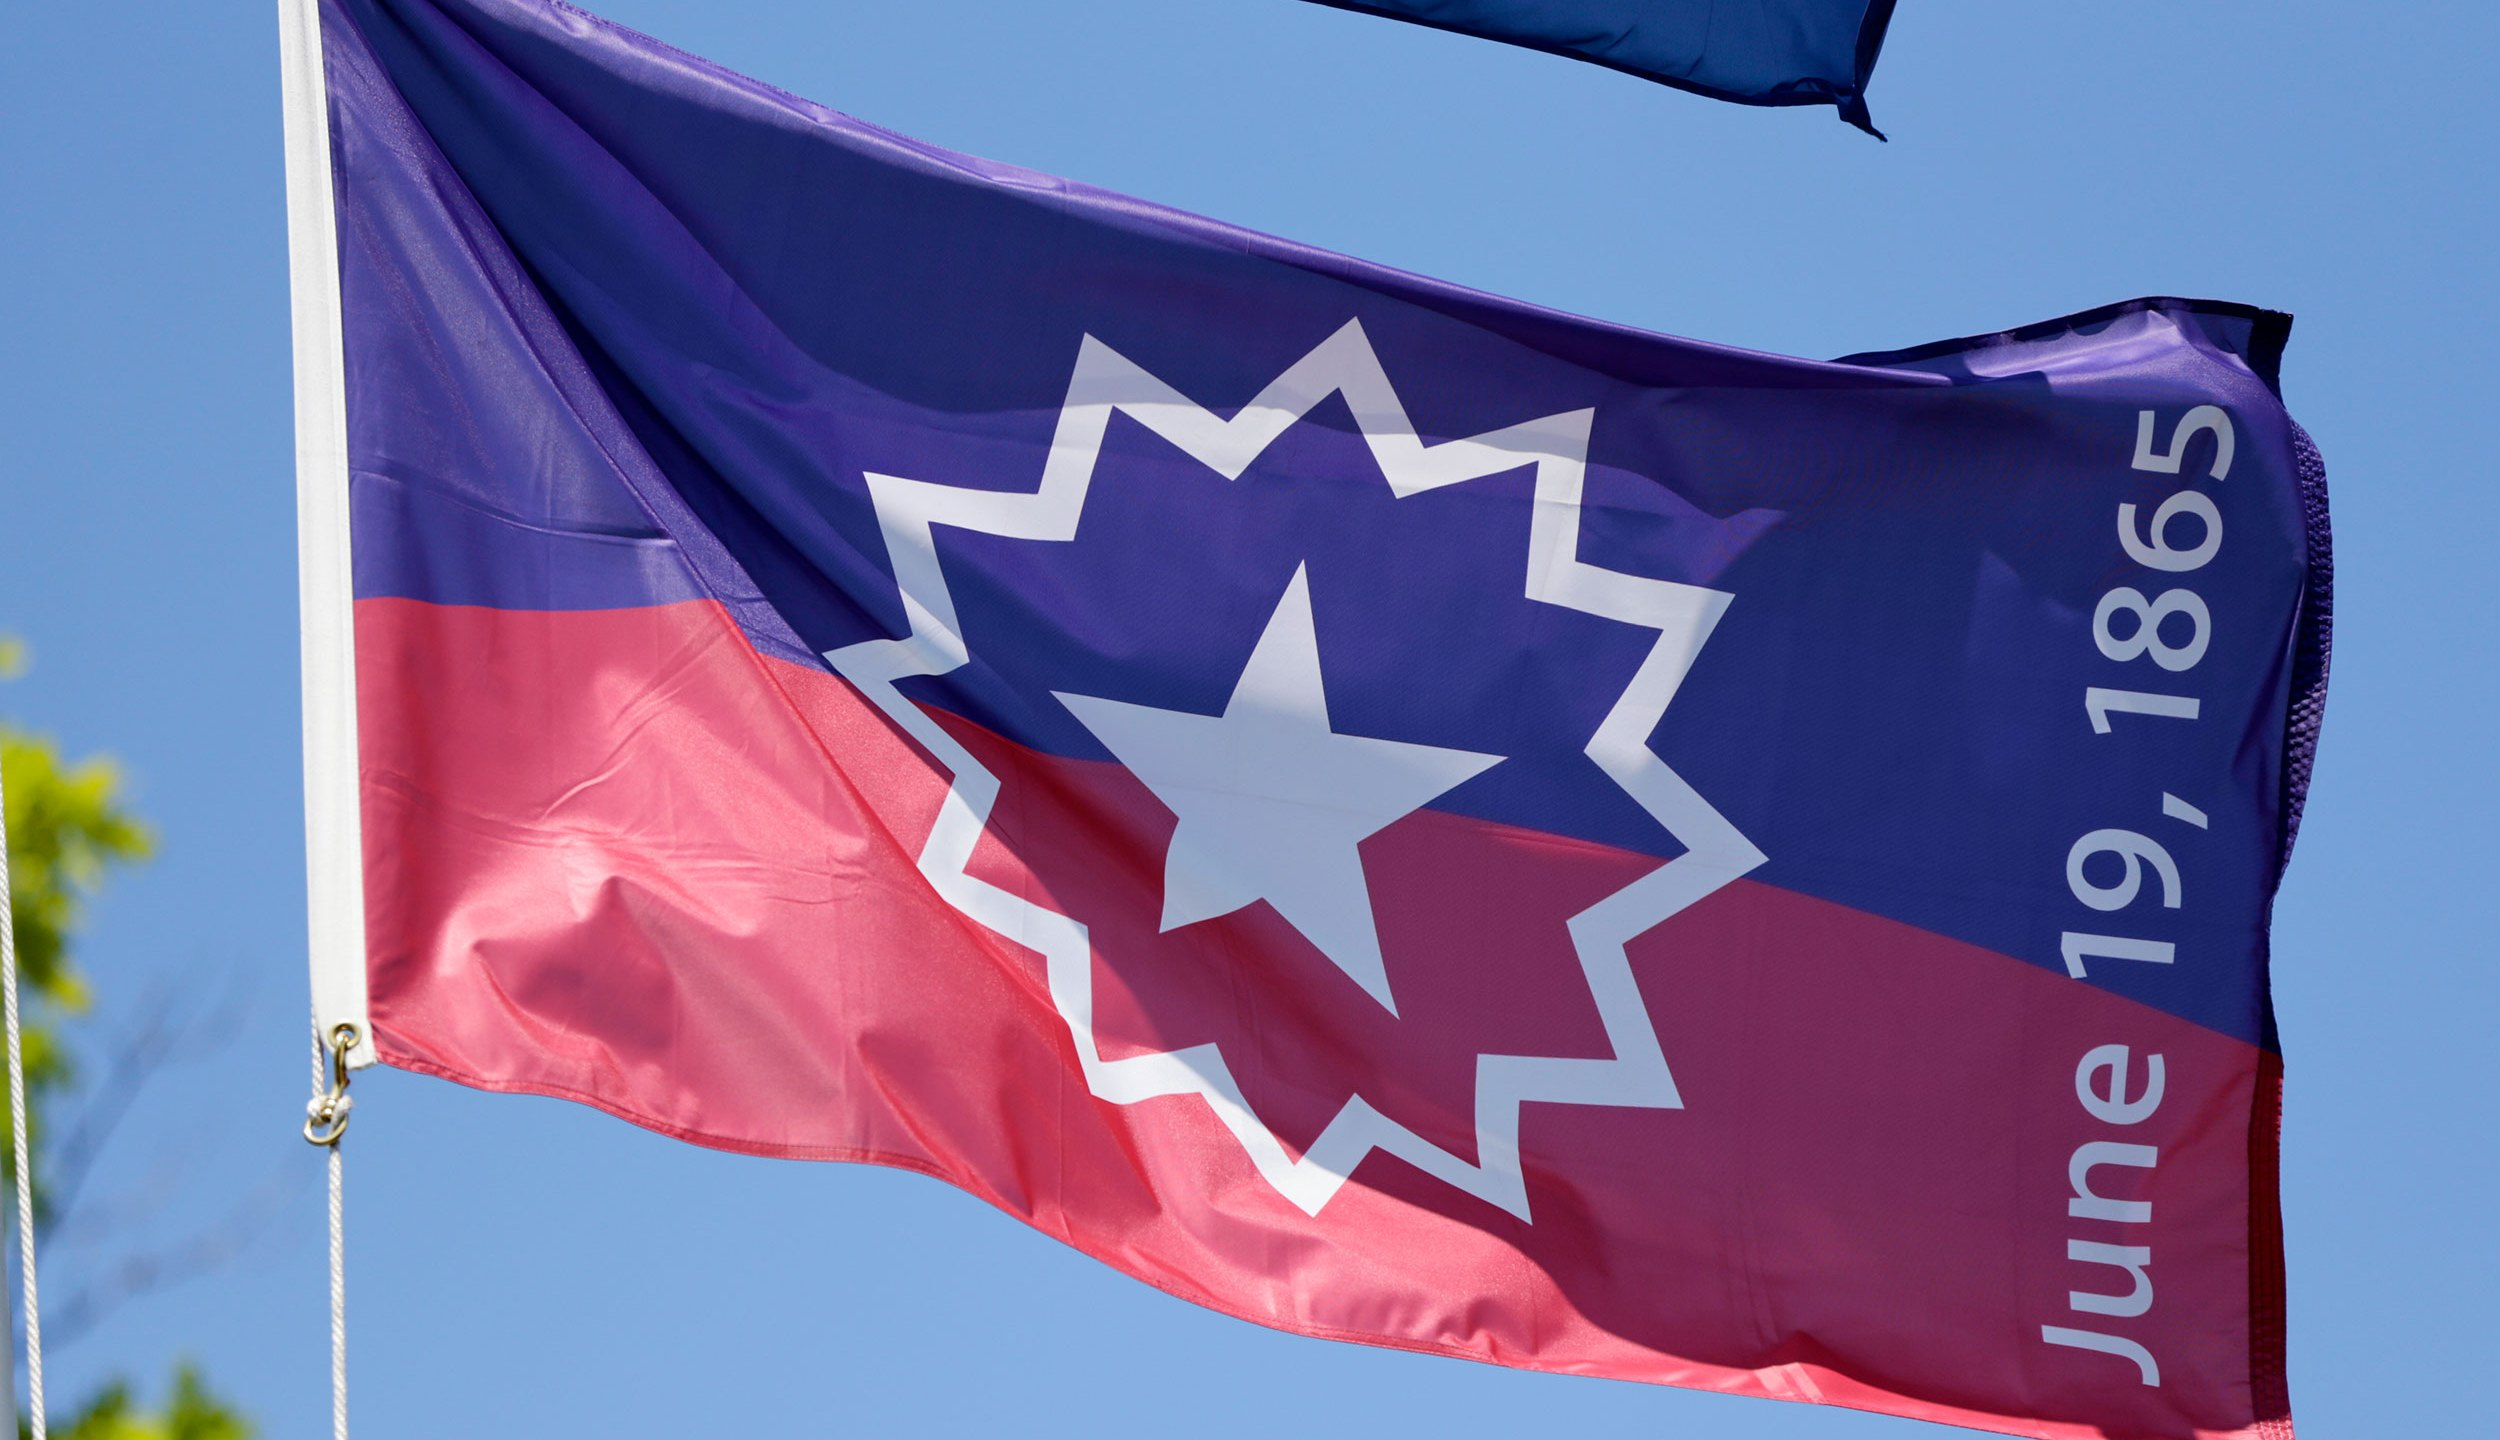 The Juneteenth flag is a symbolic representation of the end of slavery in the United States. (Nati Harnik/AP via CNN Wire)